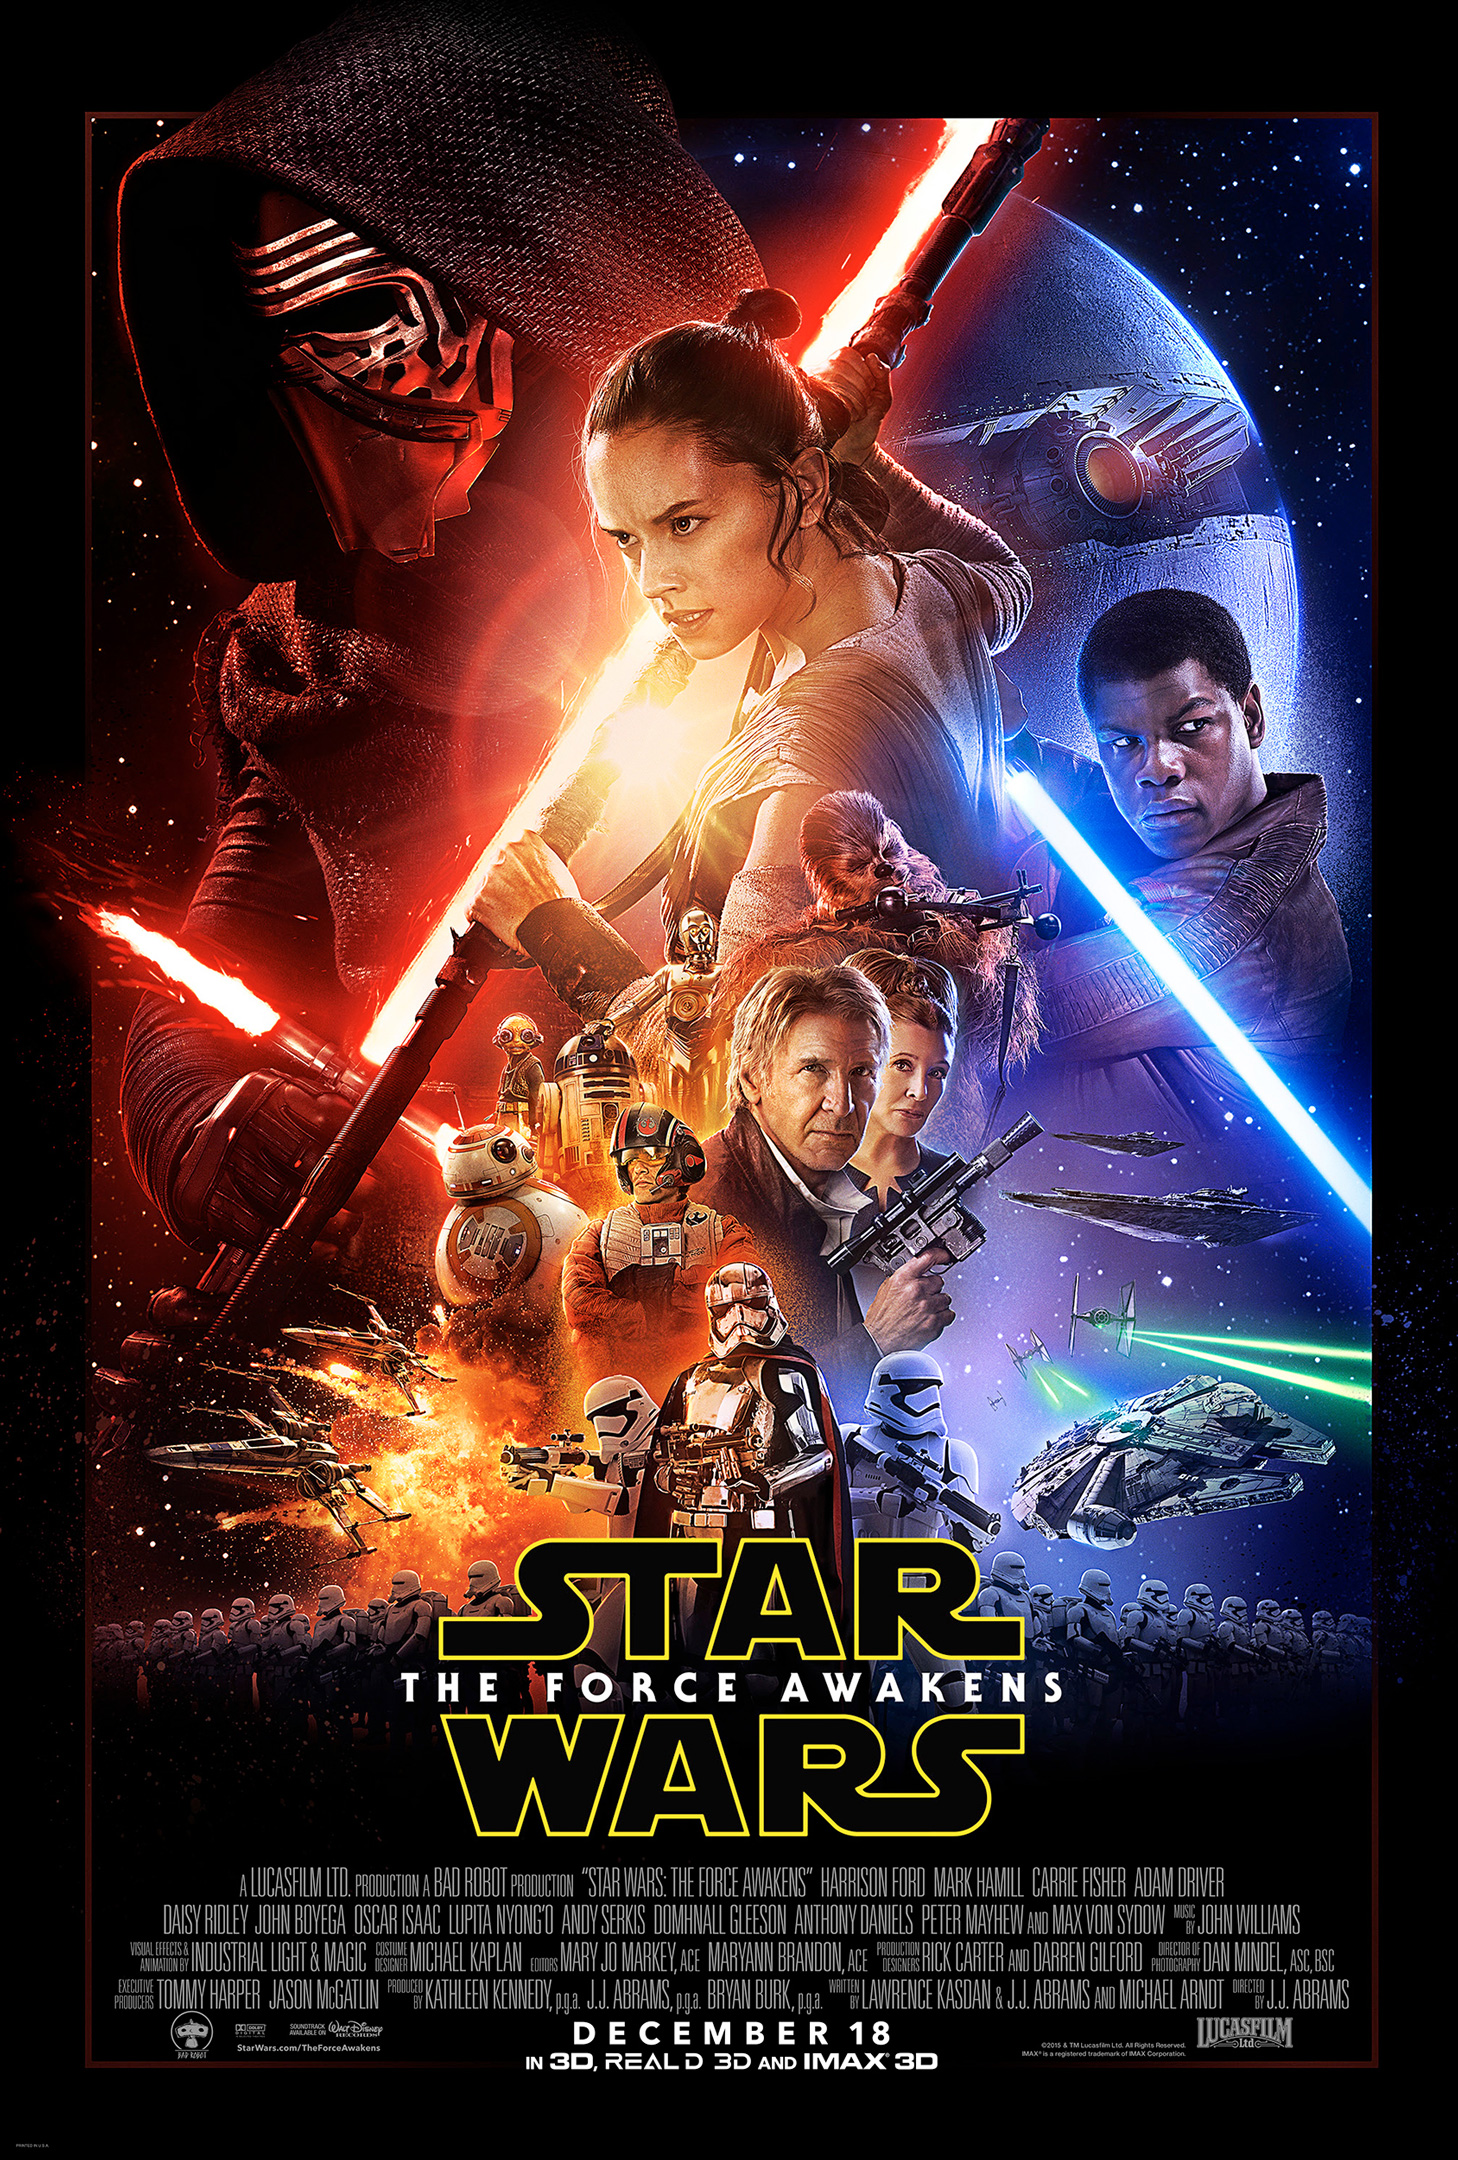 Star Wars Episode 7 The Force Awakens Official Movie Poster